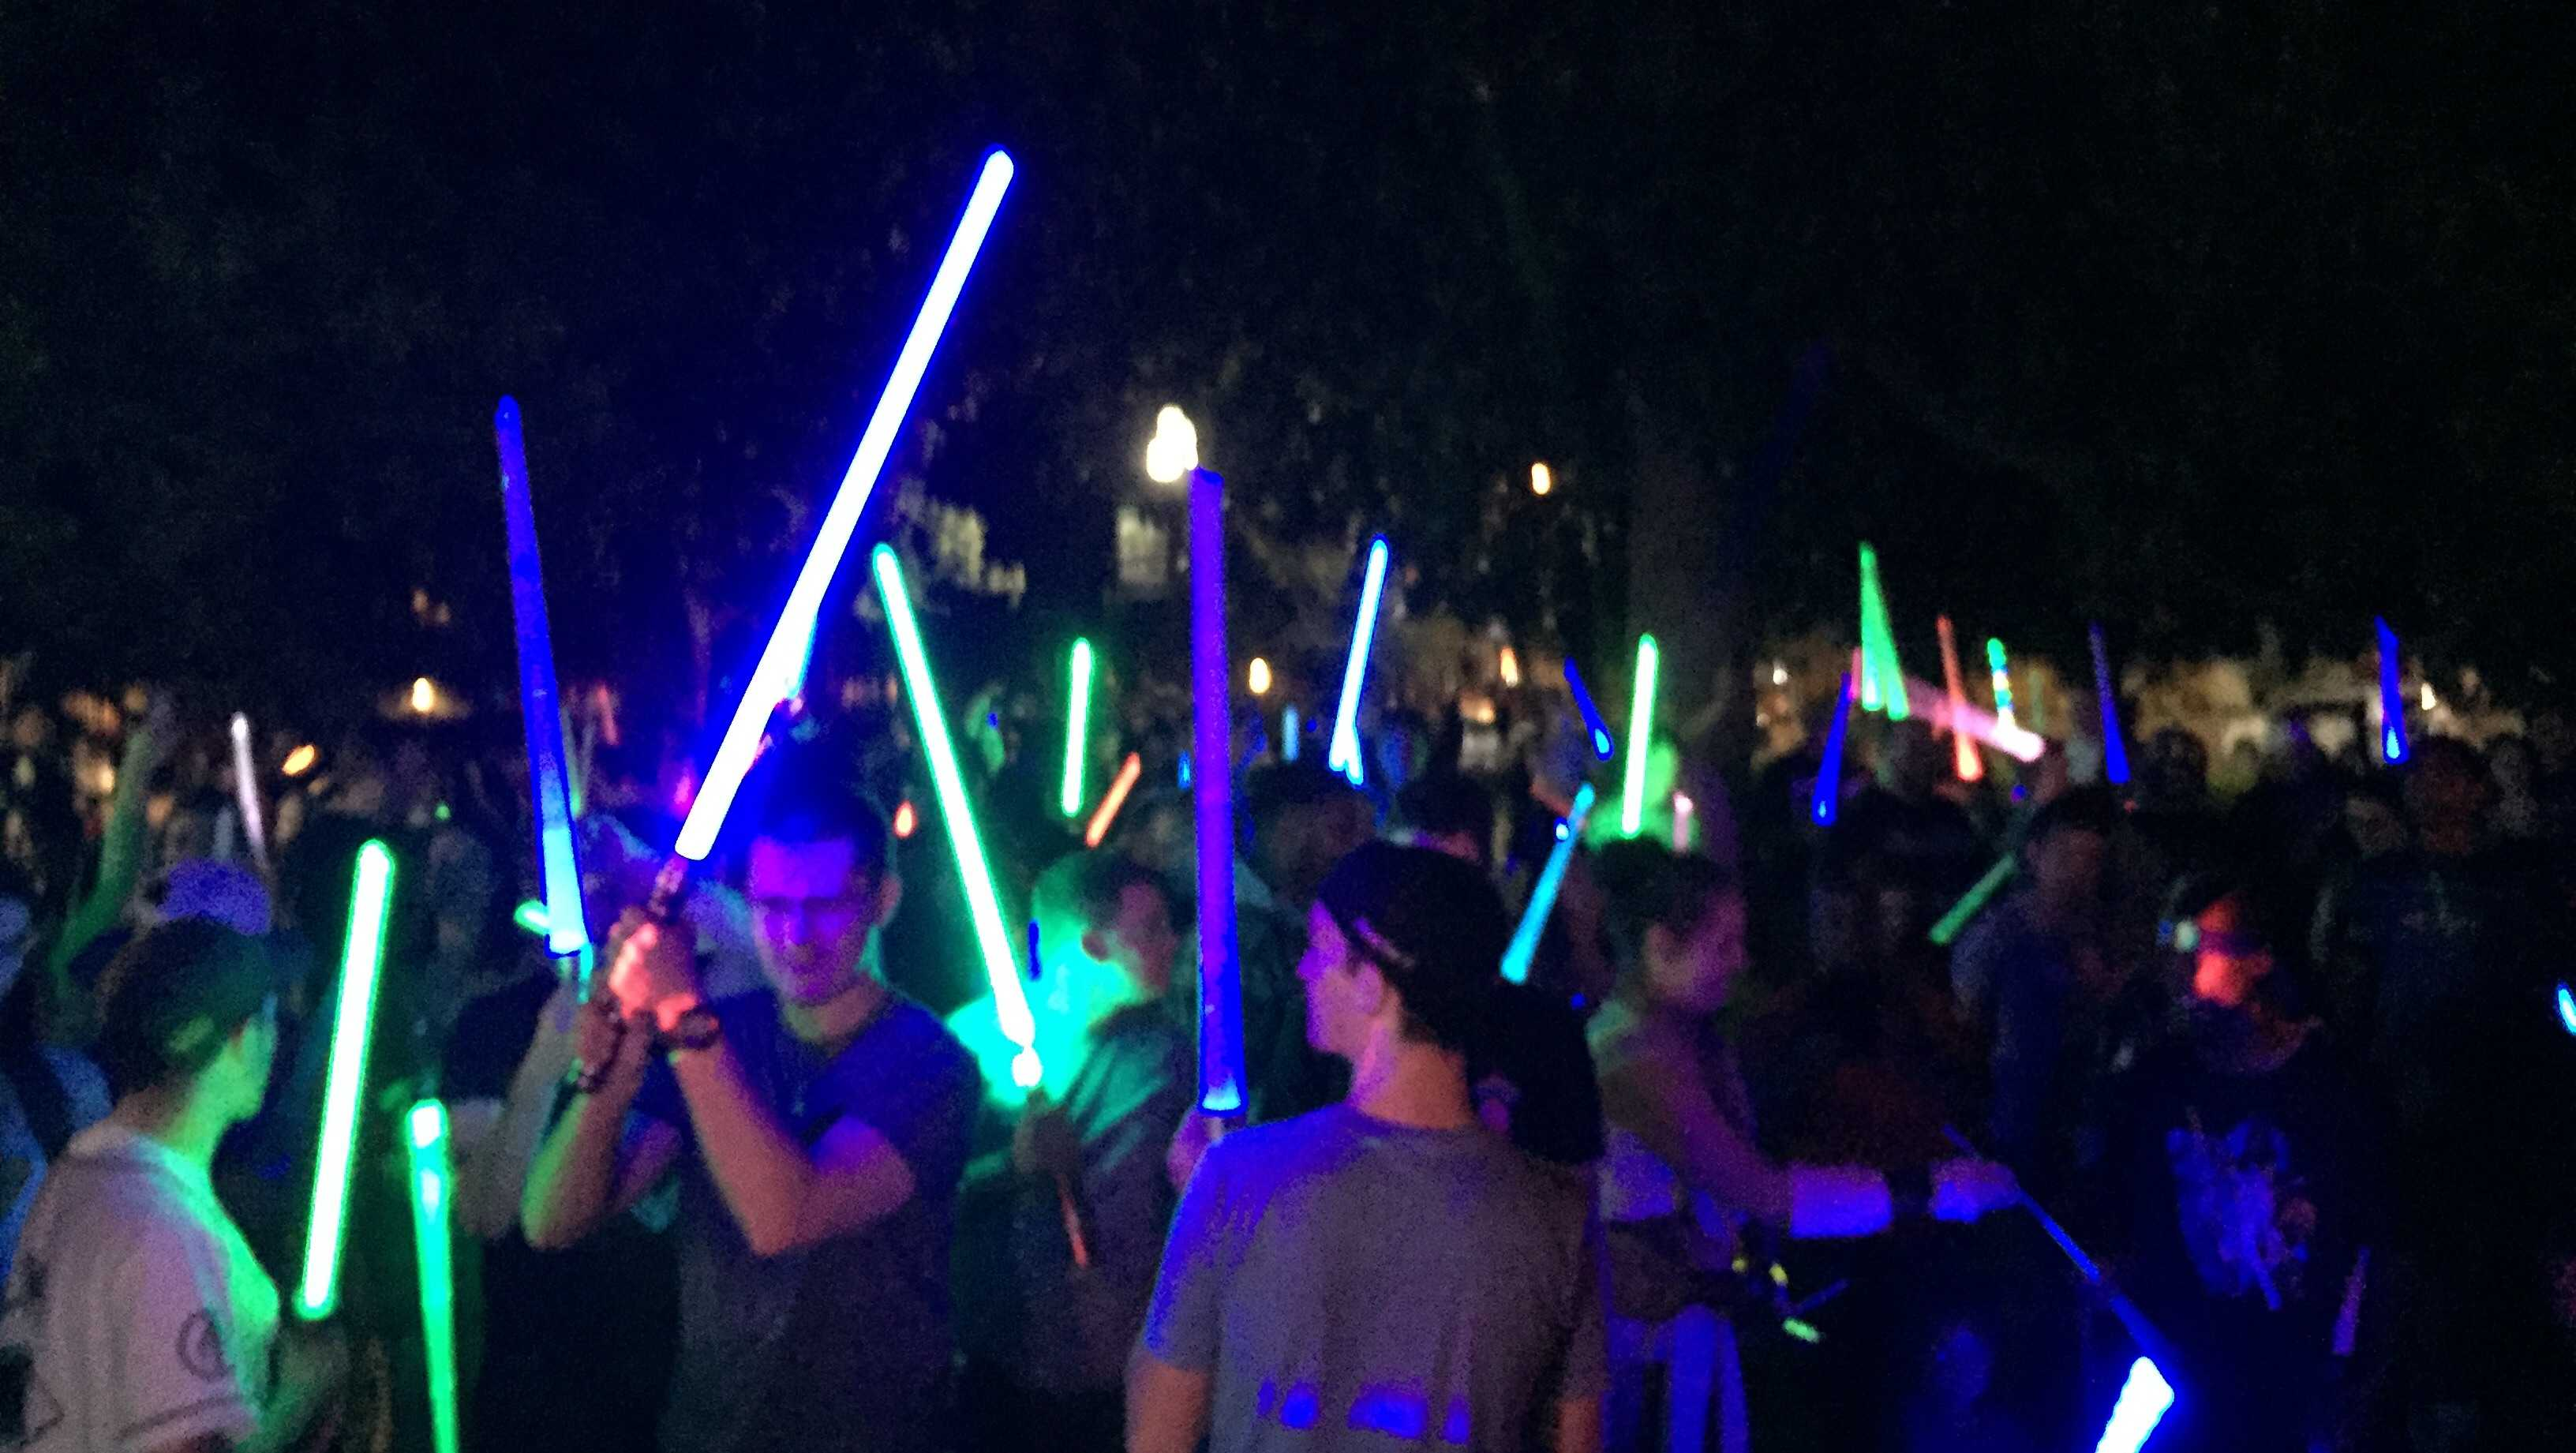 Hundreds of people faced off May 4, 2017, at Fremont Park in Sacramento for the 2nd annual light saber battle.